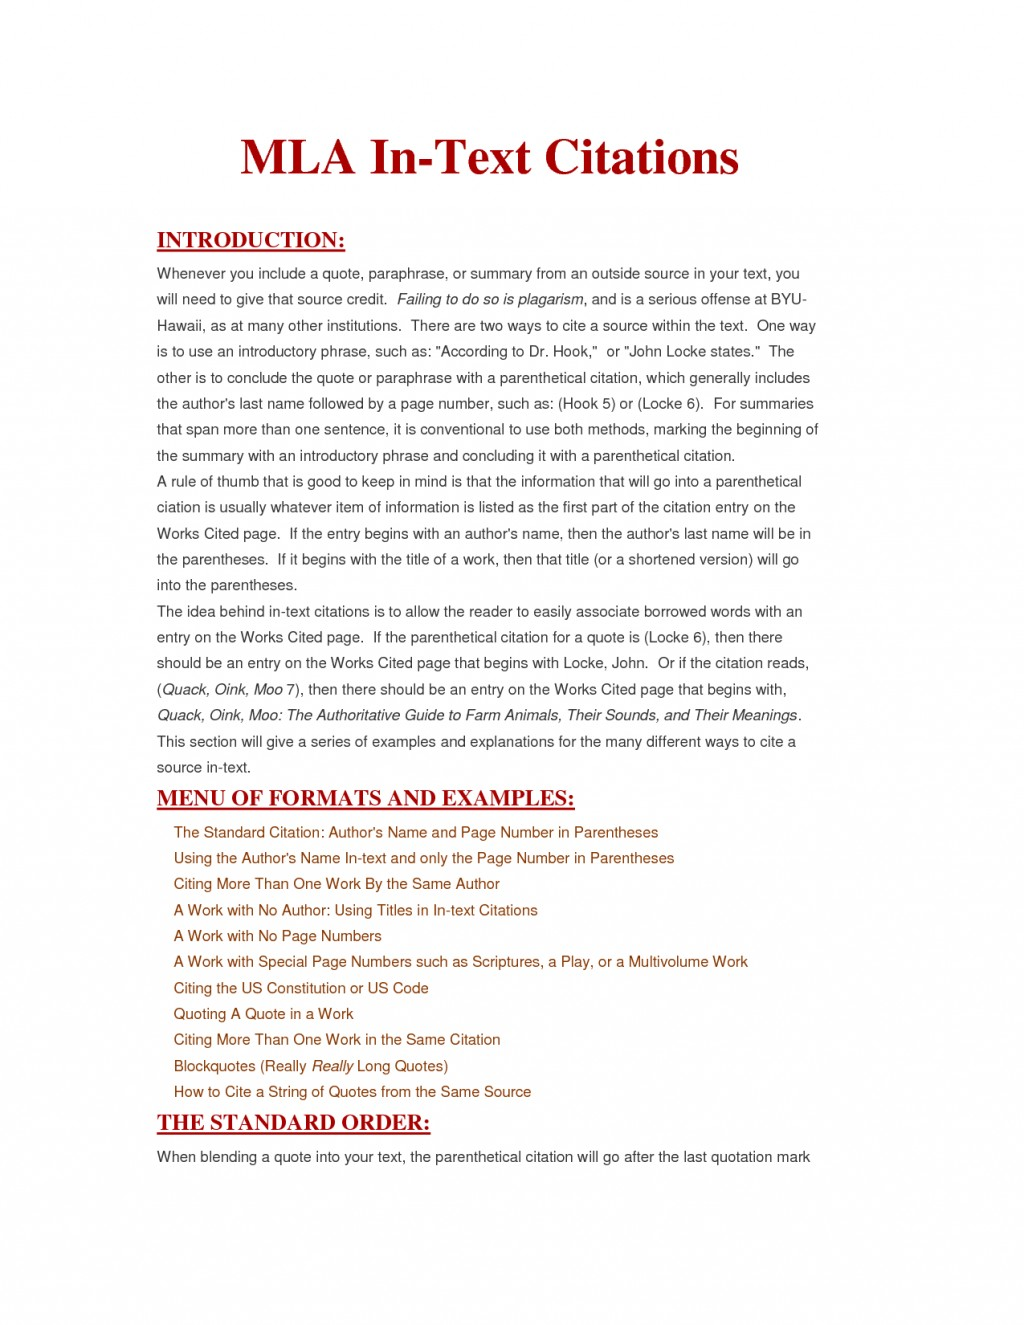 014 Essay Example Mla Citation Format Mersn Proforum Co Examples In Essays Apa How To Cite An Within Breathtaking A Book Article Reprinted From Large